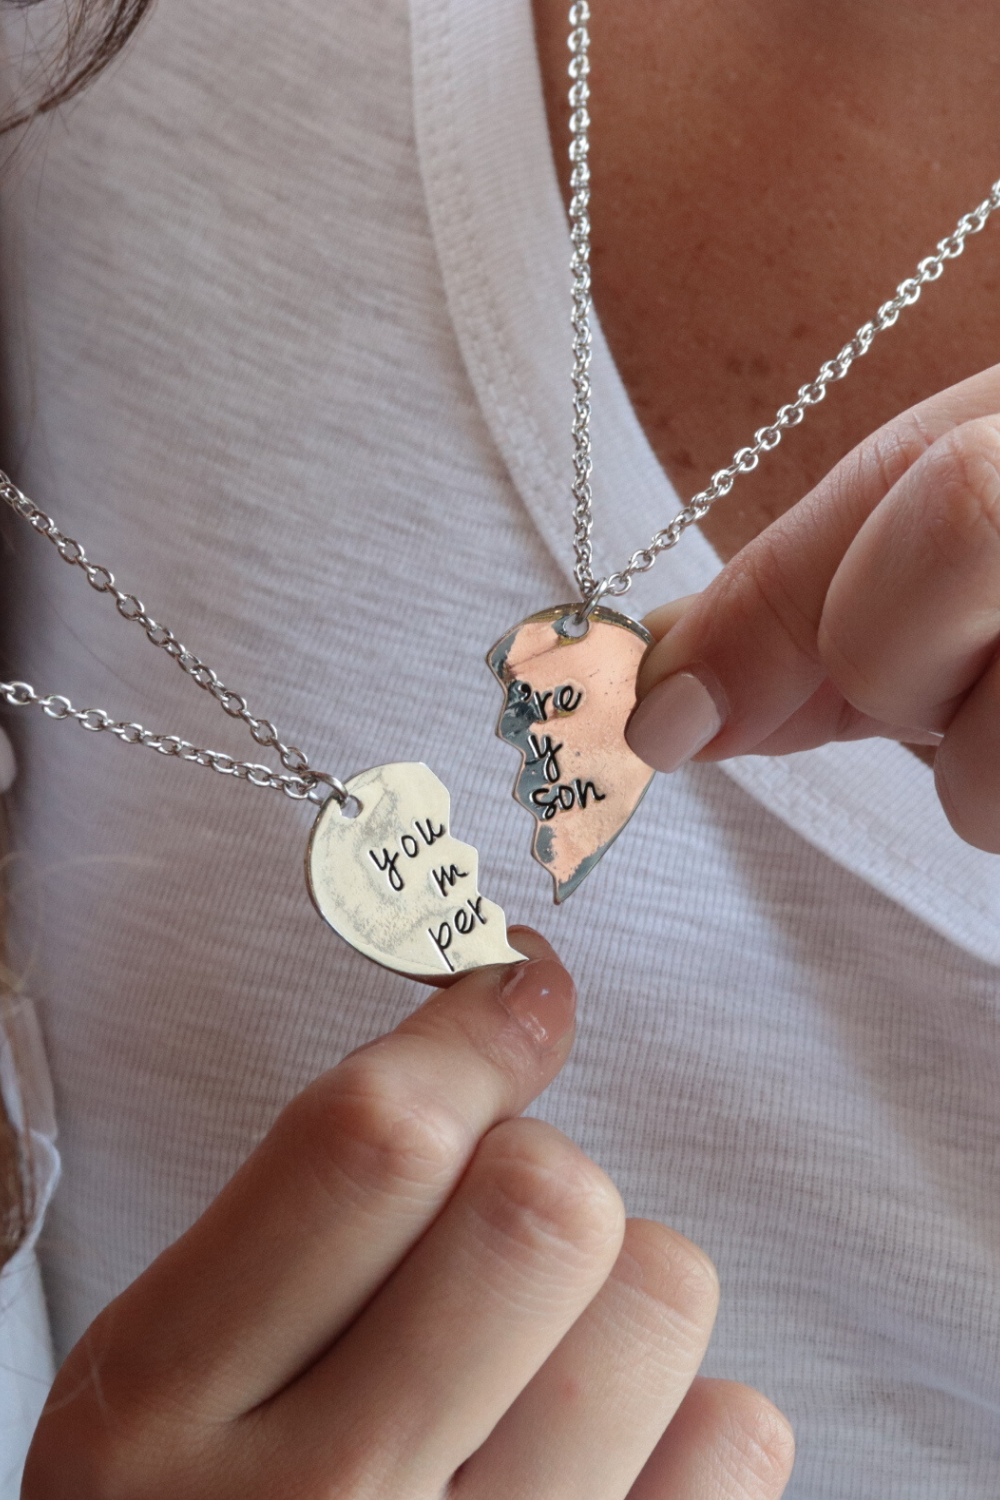 You Are My Person Necklace Personalized Couples Necklace Set Etsy Personalized Necklace Couples Personalized Couple Friendship Gifts